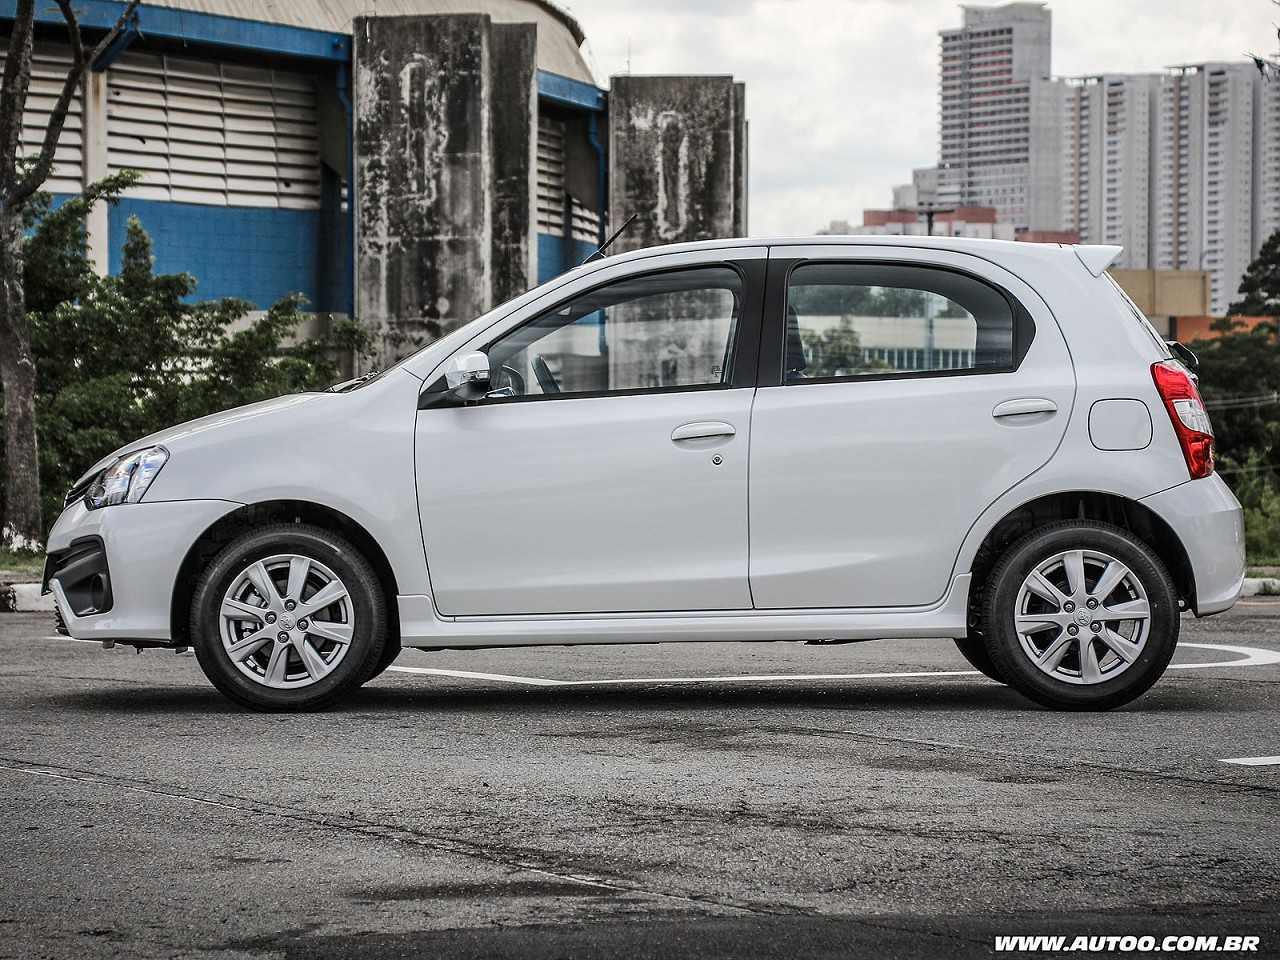 Toyota Etios 2018 - lateral